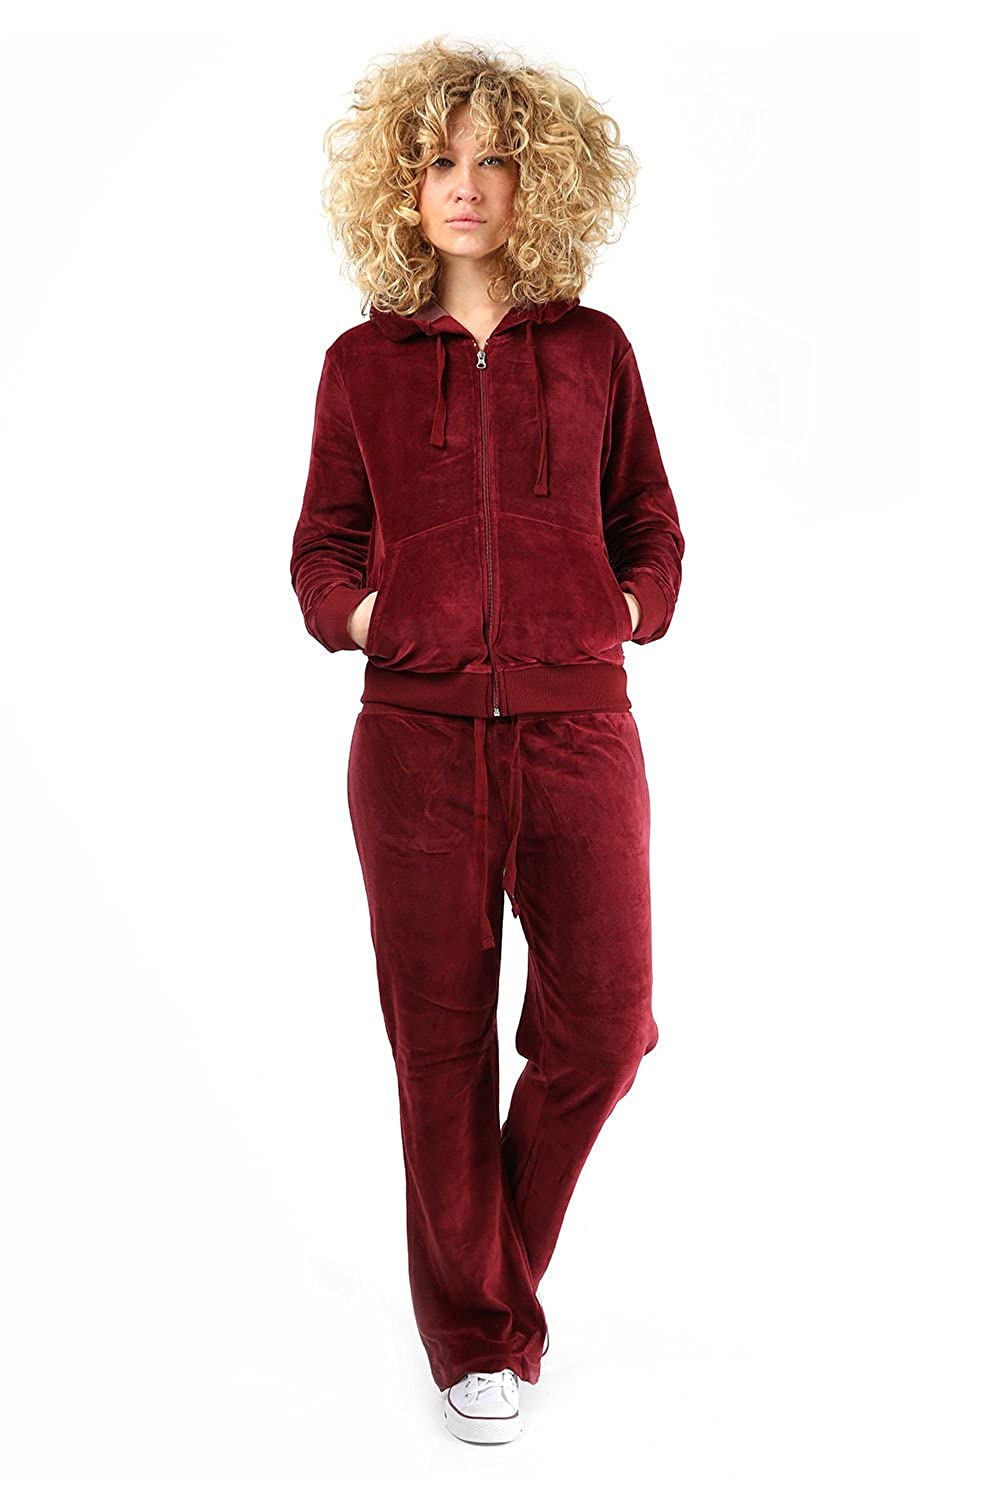 Womens Velour Full Tracksuit Hoodie And Jogging Pants Ladies Drawstring Zipper Joggers Sport Gym Normal And Plus Sizes 2 Piece Set